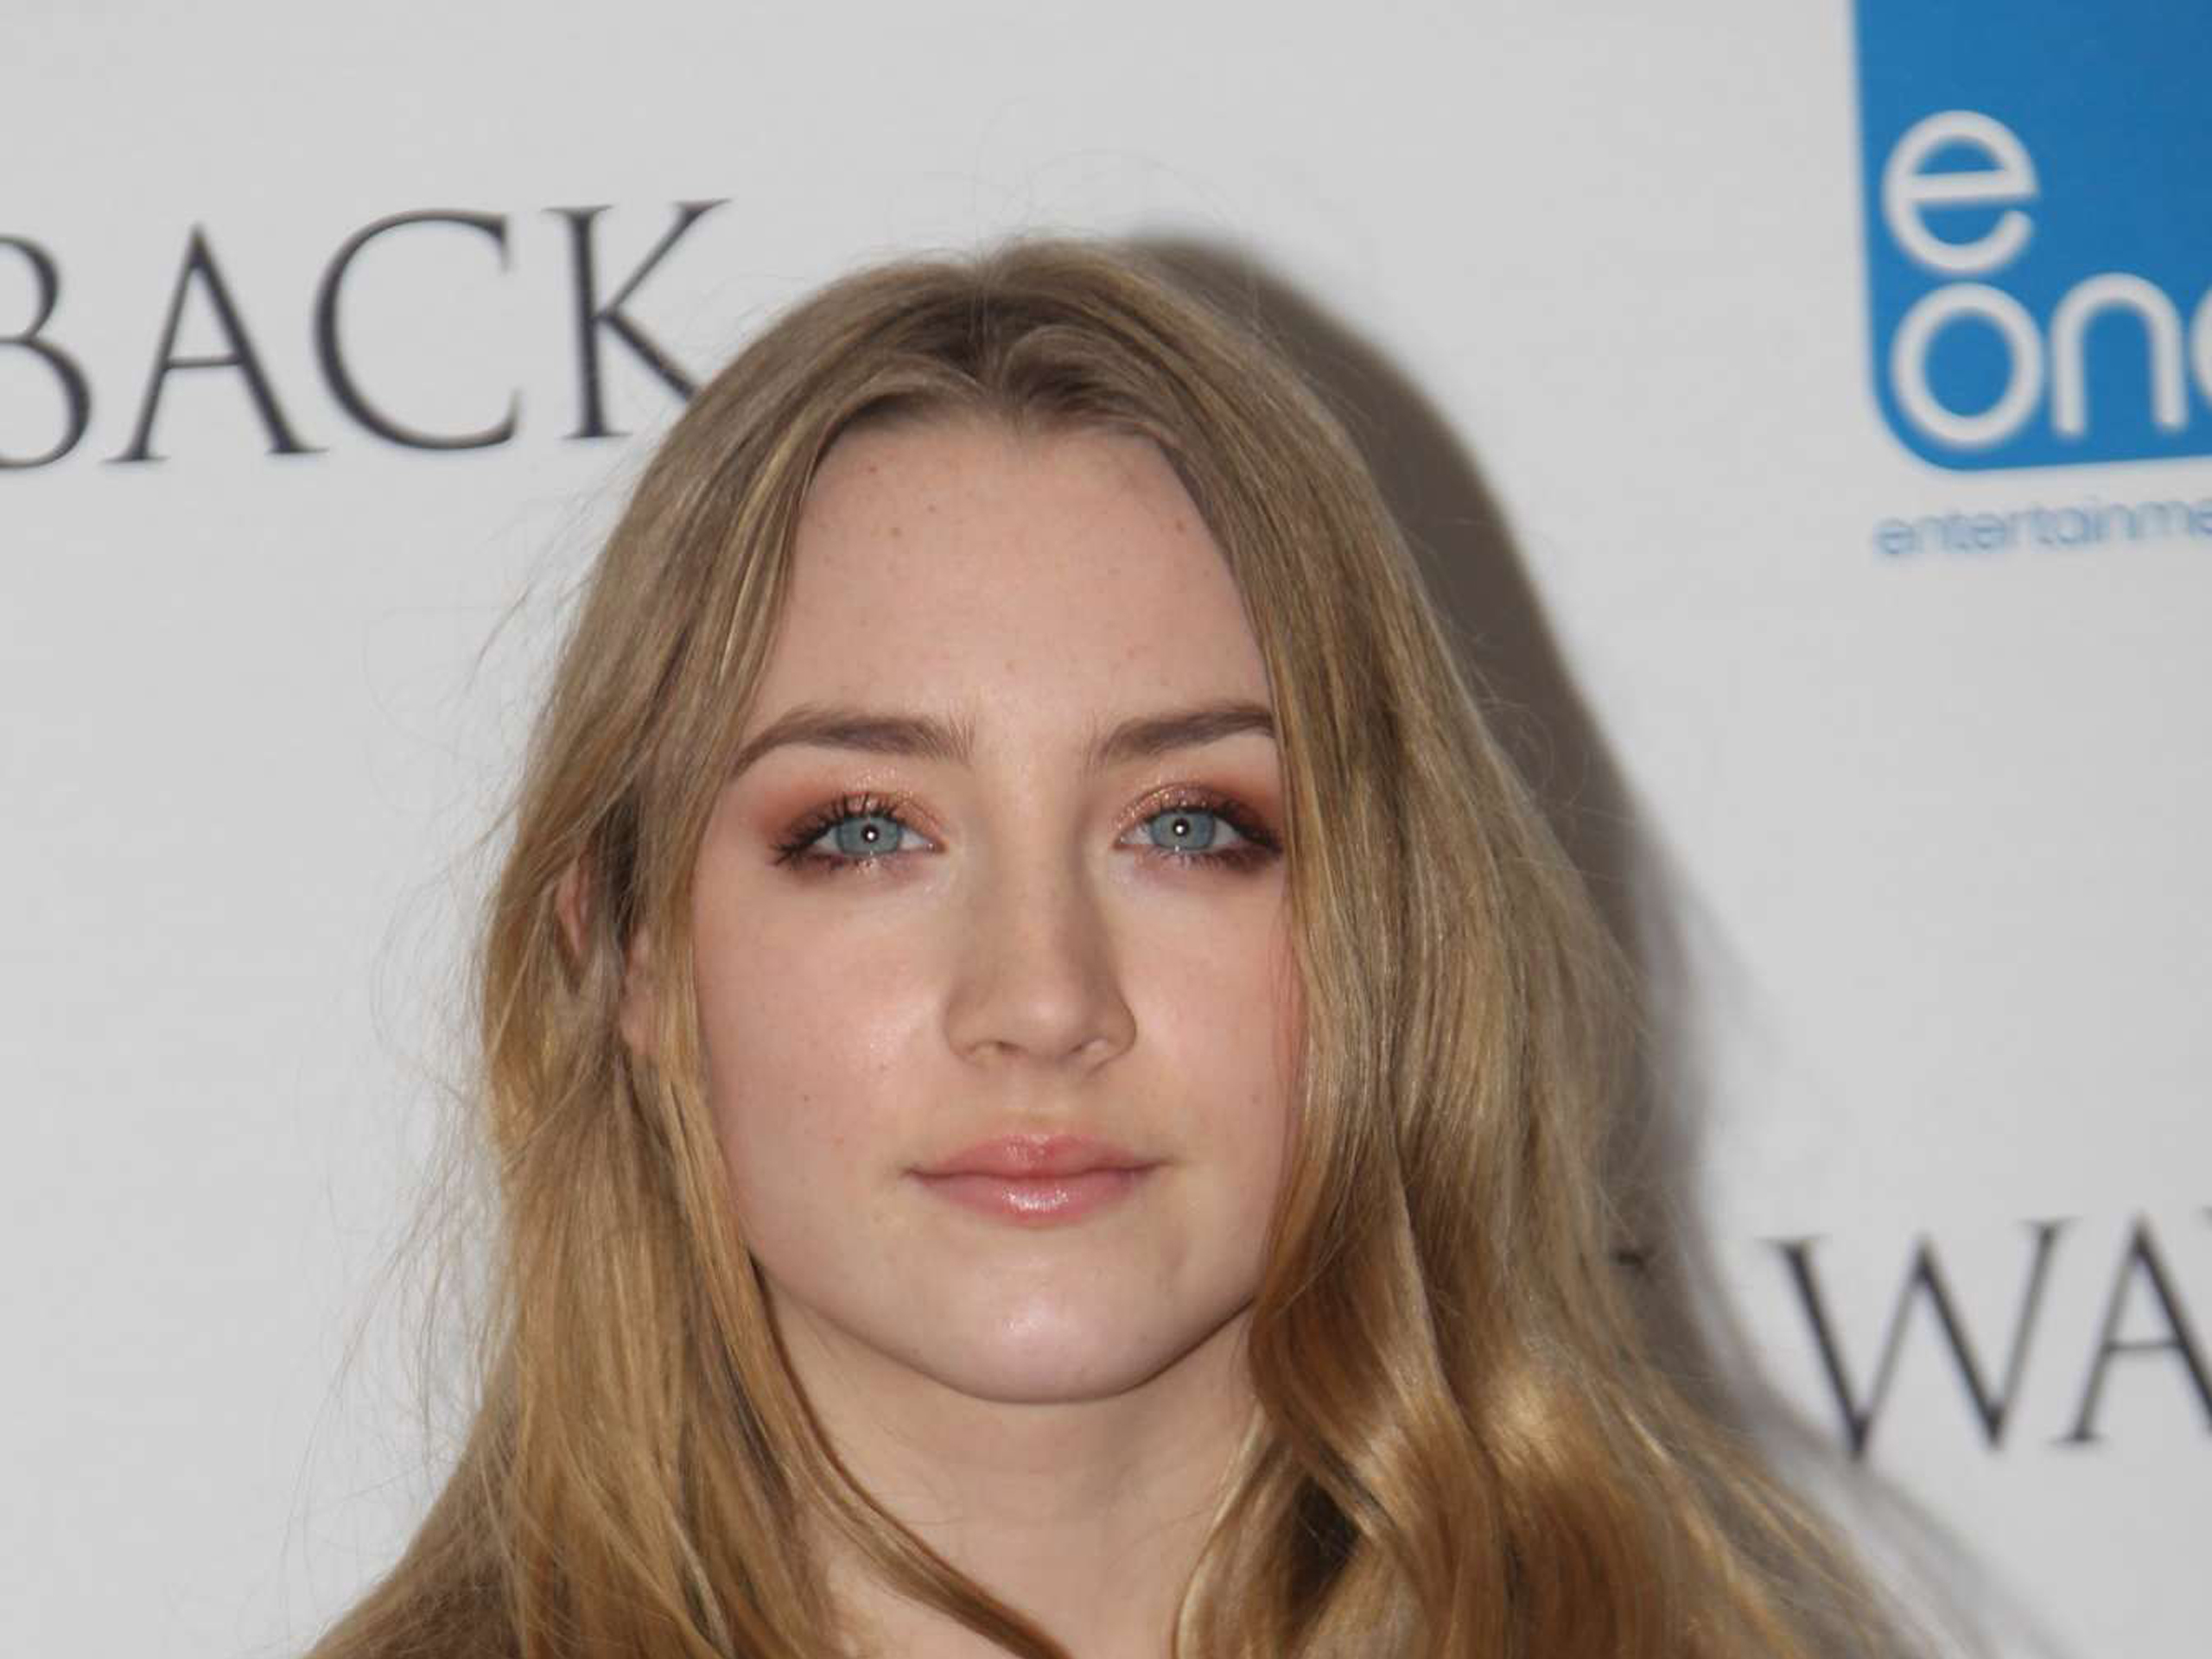 Celebrity Saoirse Ronan naked (76 foto and video), Ass, Hot, Instagram, in bikini 2015